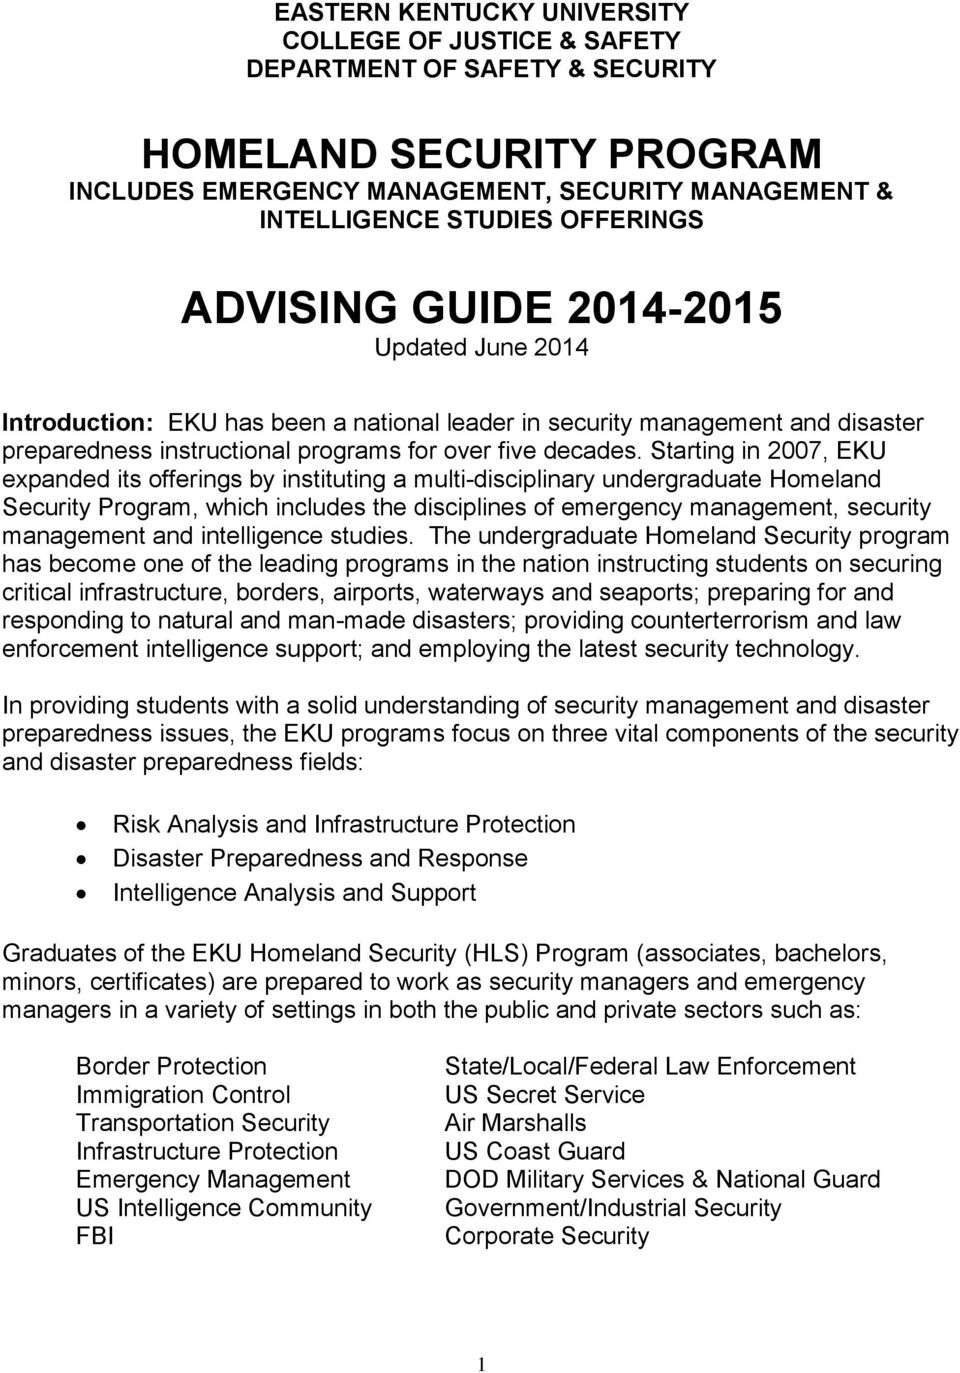 Starting in 2007, EKU expanded its offerings by instituting a multi-disciplinary undergraduate Homeland Security Program, which includes the disciplines of emergency management, security management